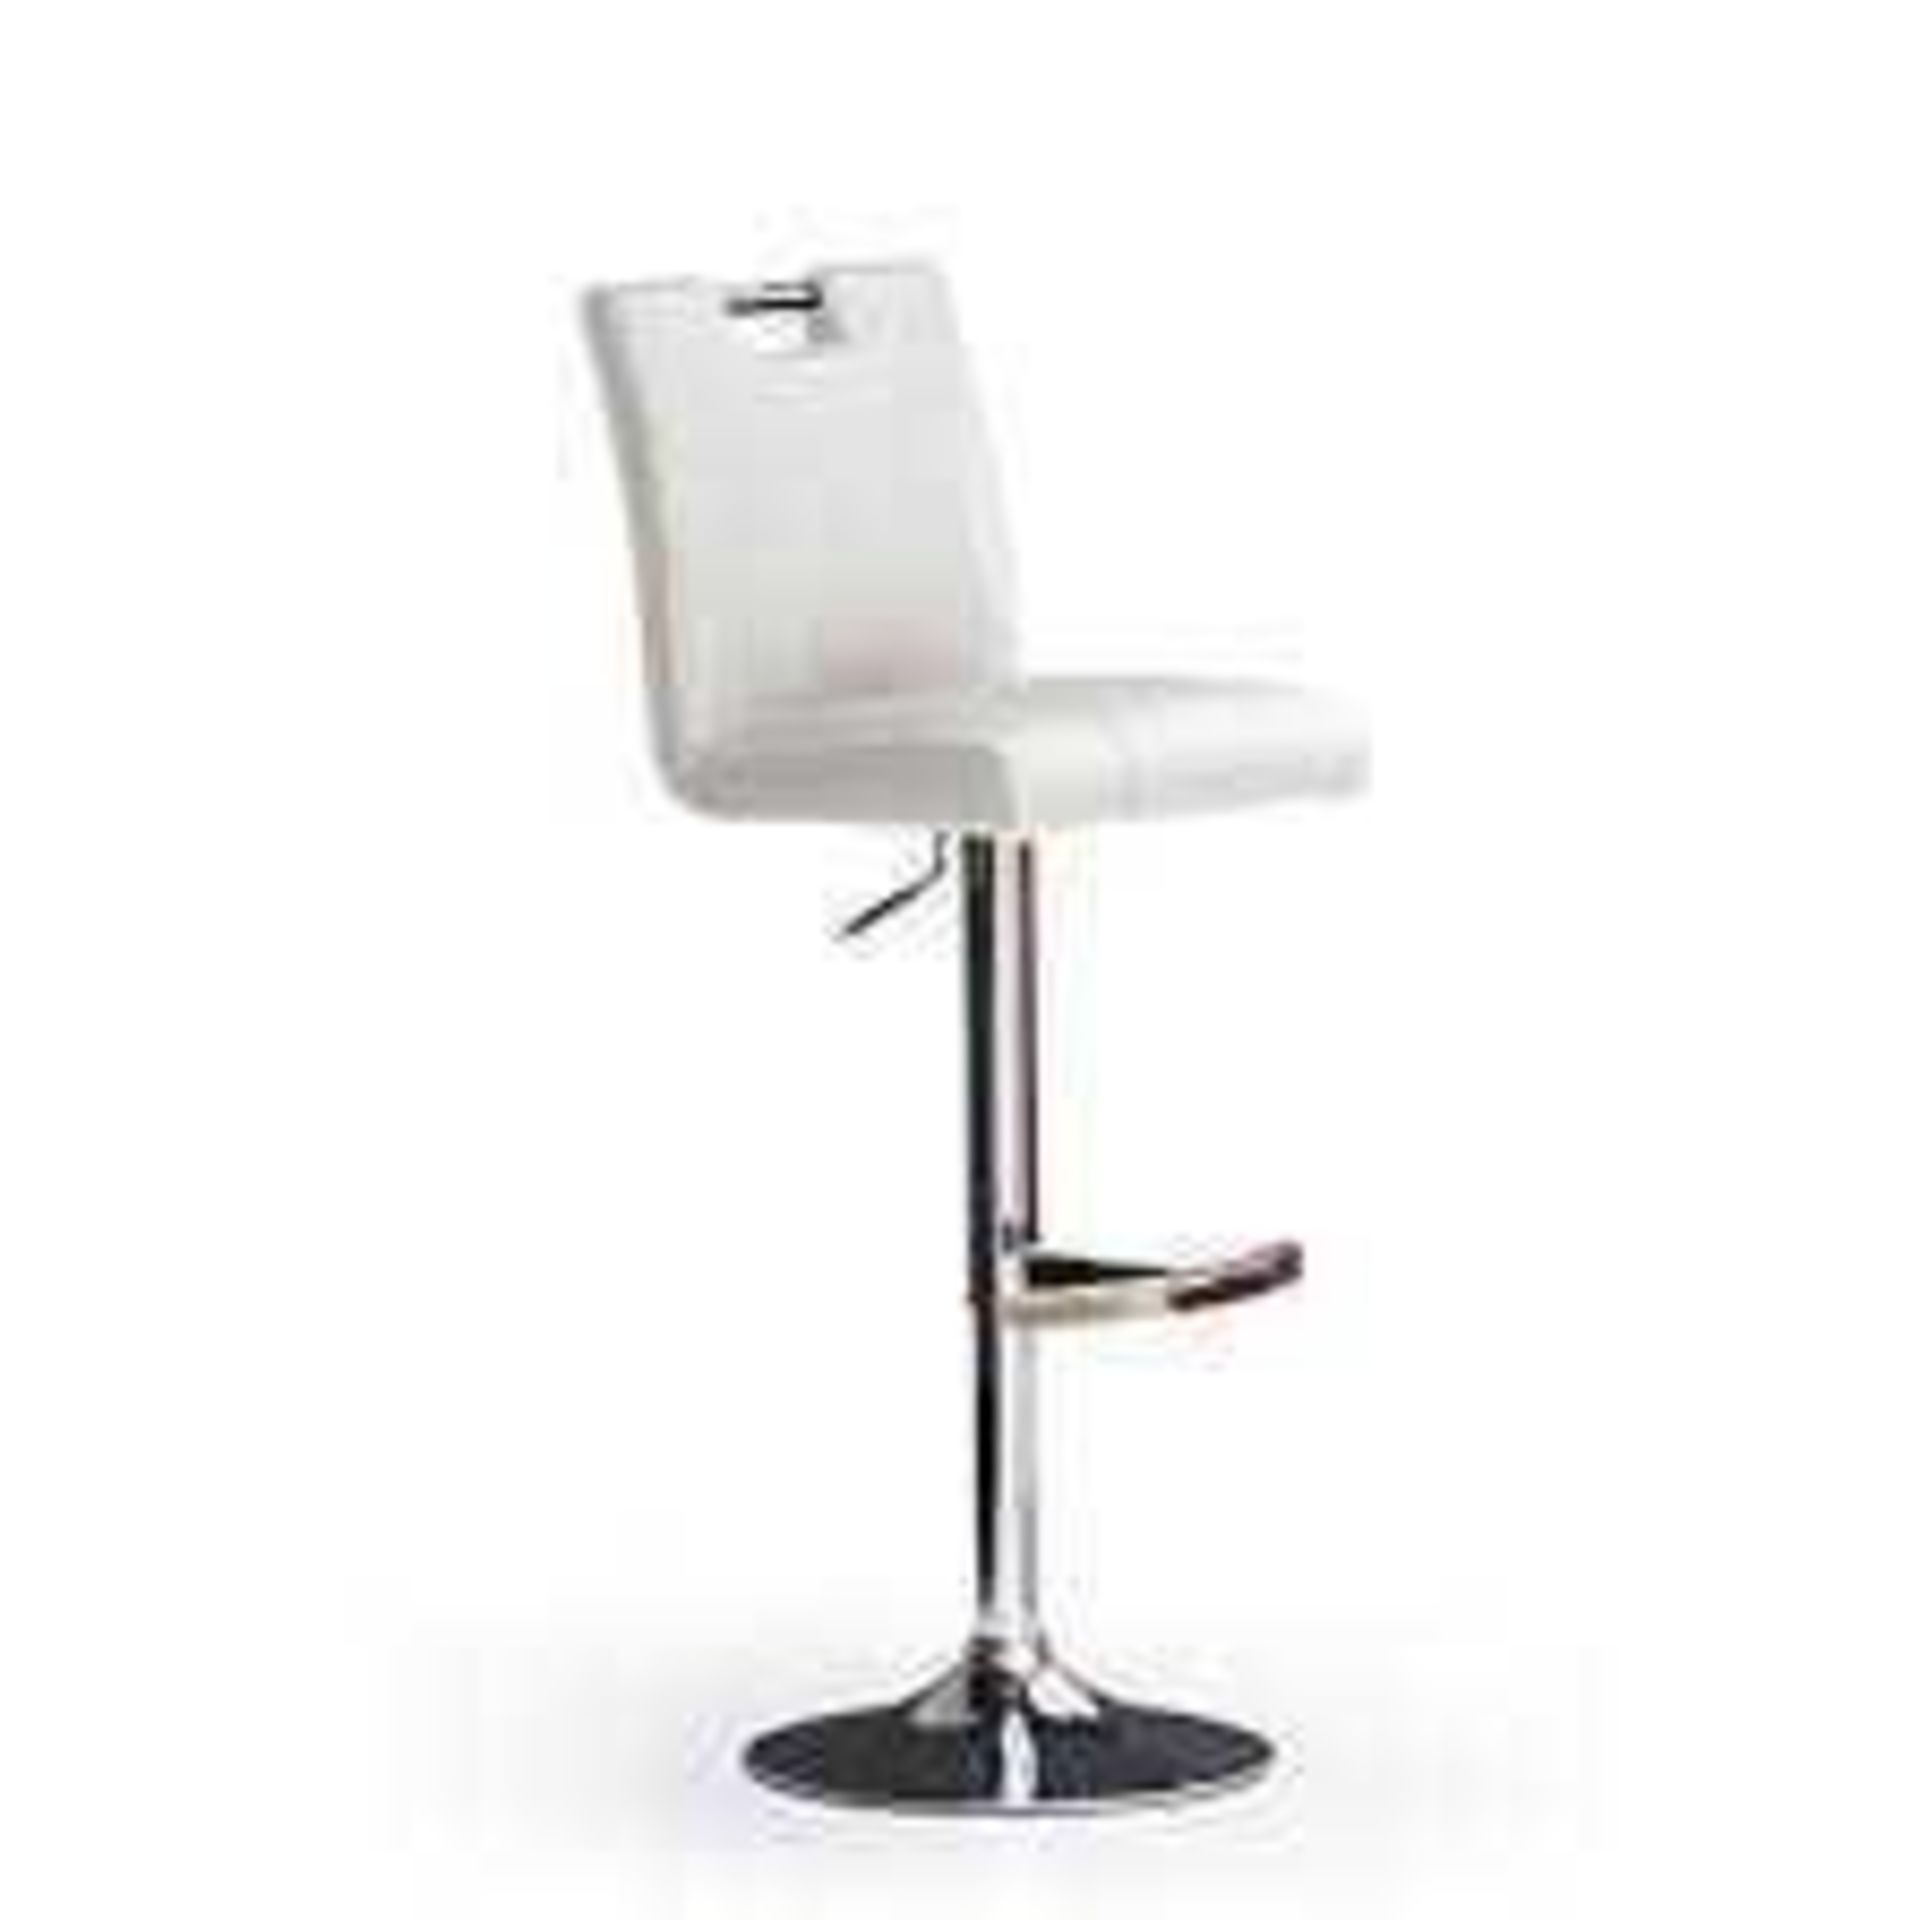 RRP £100 - Boxed 'Casta' Barstool In White Faux Leather With Chrome Base (Appraisals Available On